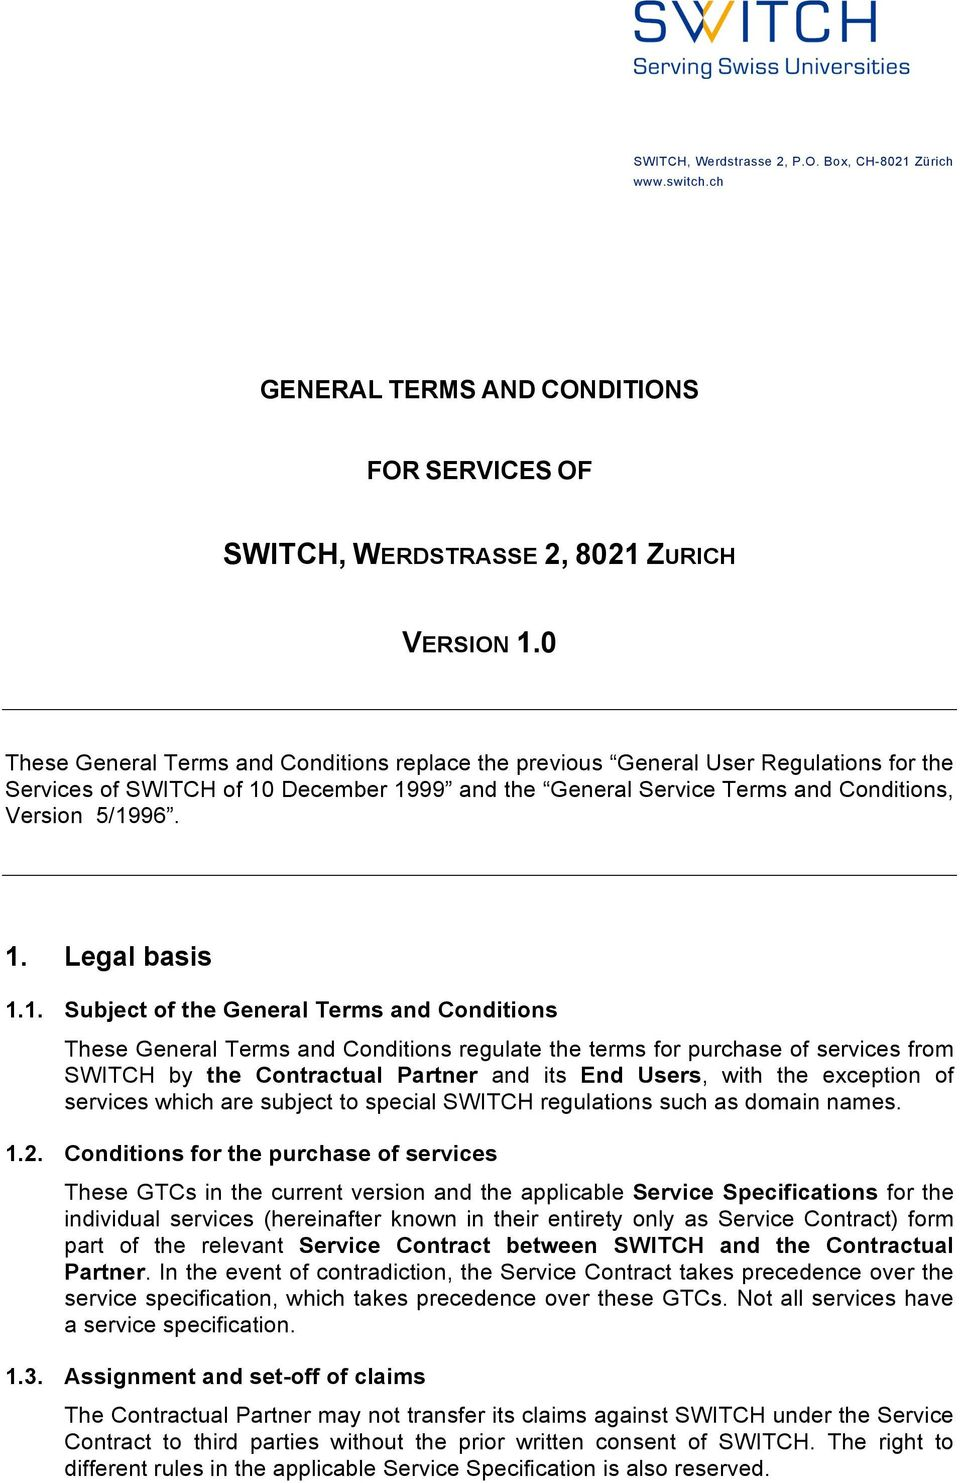 1. Subject of the General Terms and Conditions These General Terms and Conditions regulate the terms for purchase of services from SWITCH by the Contractual Partner and its End Users, with the